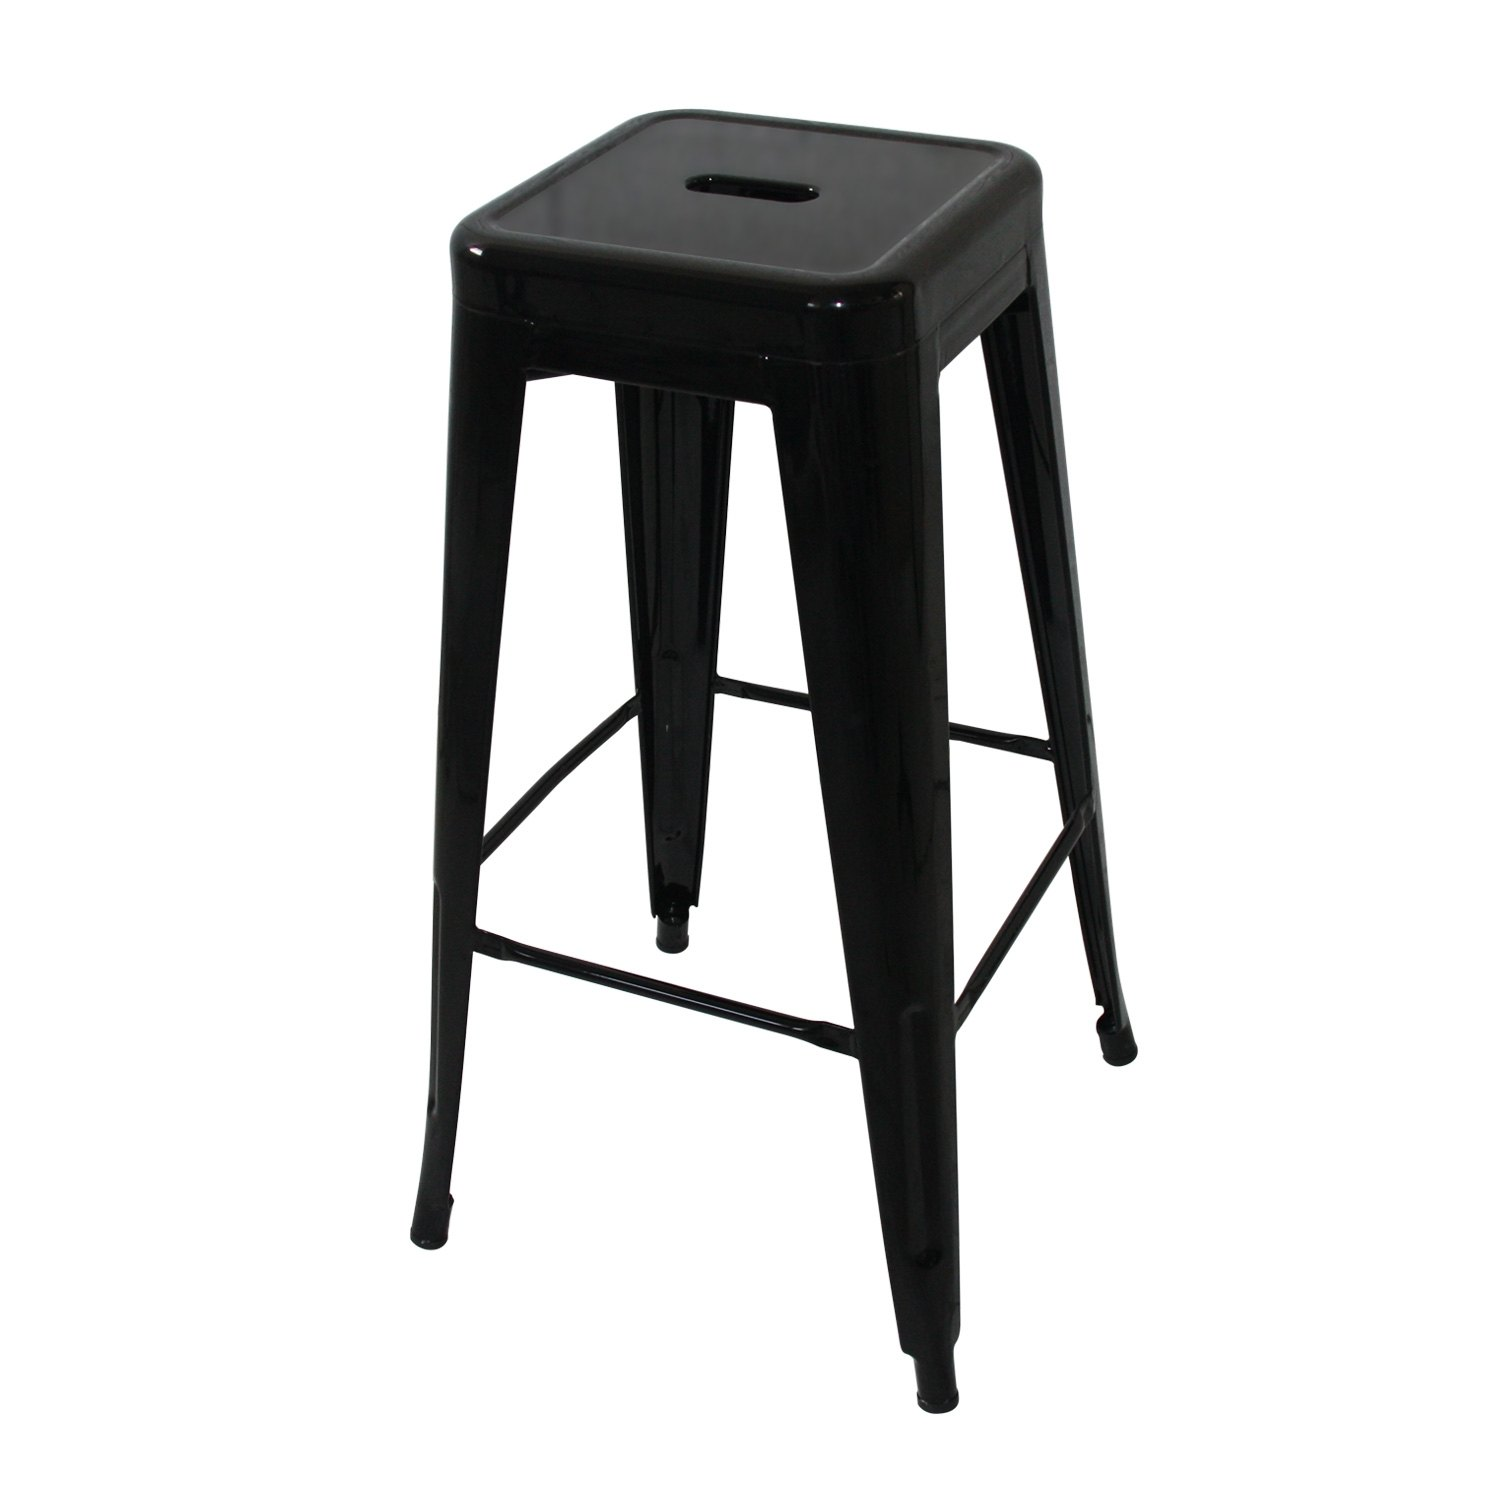 tabouret tolix pas cher tabouret lank industriel with tabouret tolix pas cher tabouret. Black Bedroom Furniture Sets. Home Design Ideas